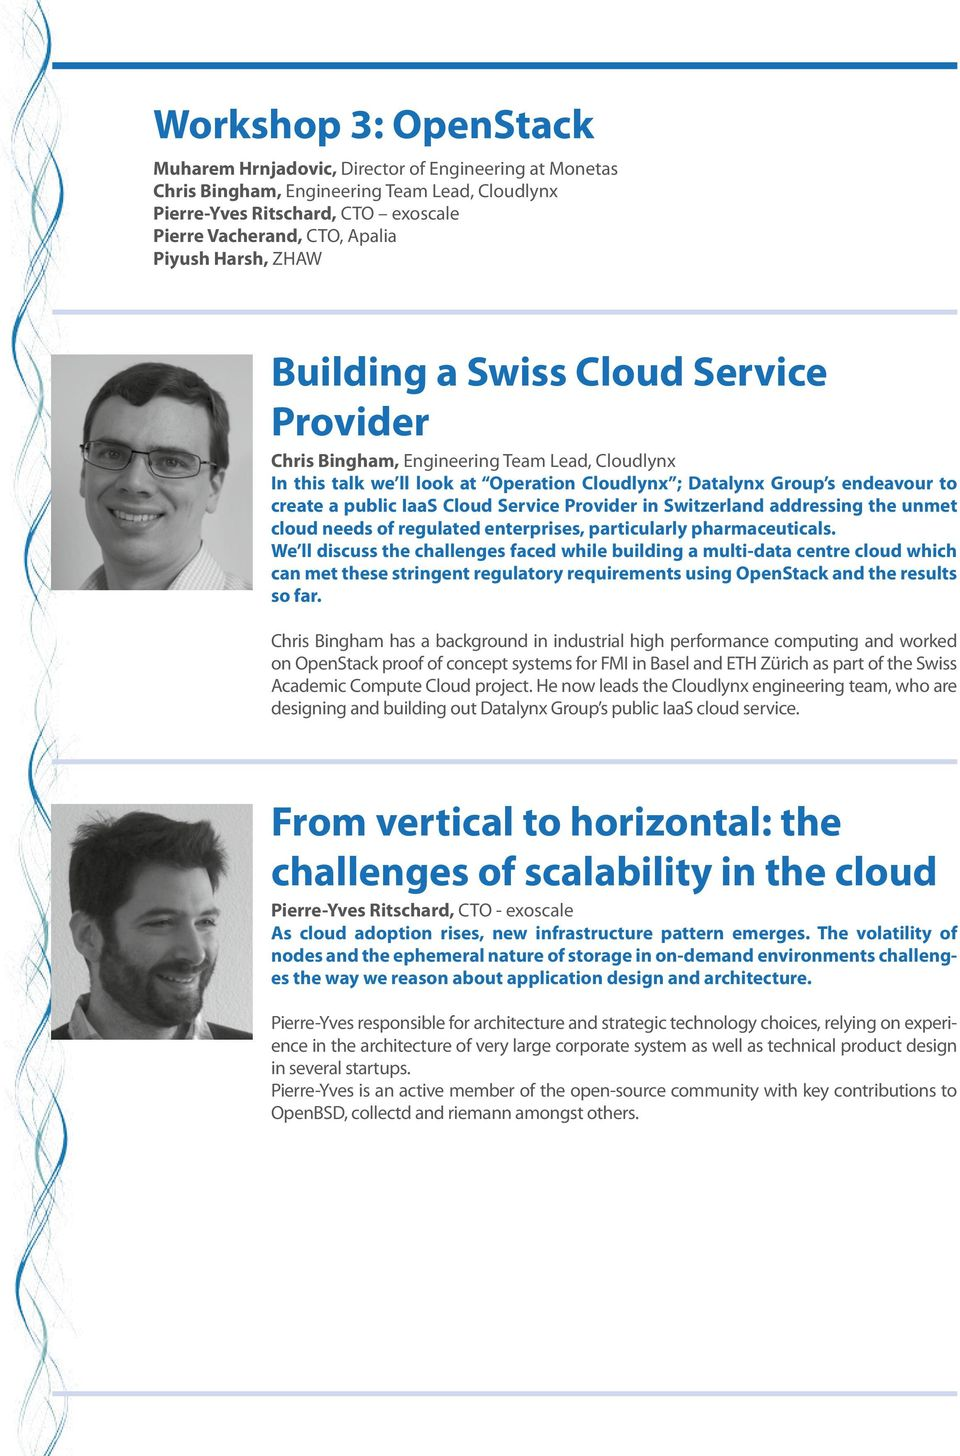 Cloud Service Provider in Switzerland addressing the unmet cloud needs of regulated enterprises, particularly pharmaceuticals.